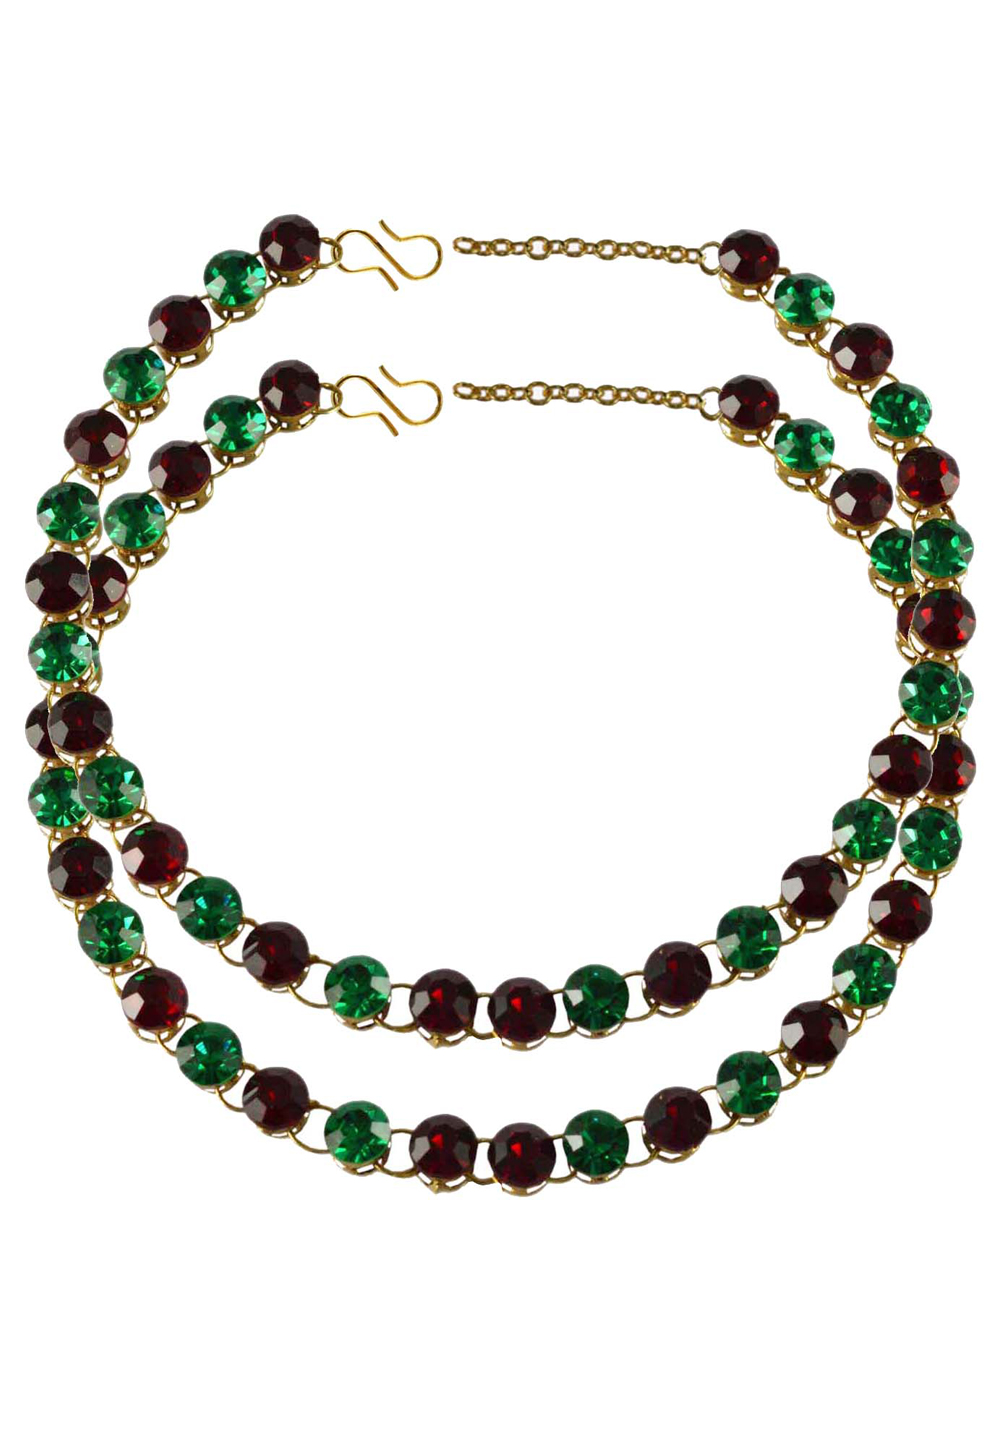 Green Brass Gold Plated Anklets 171268